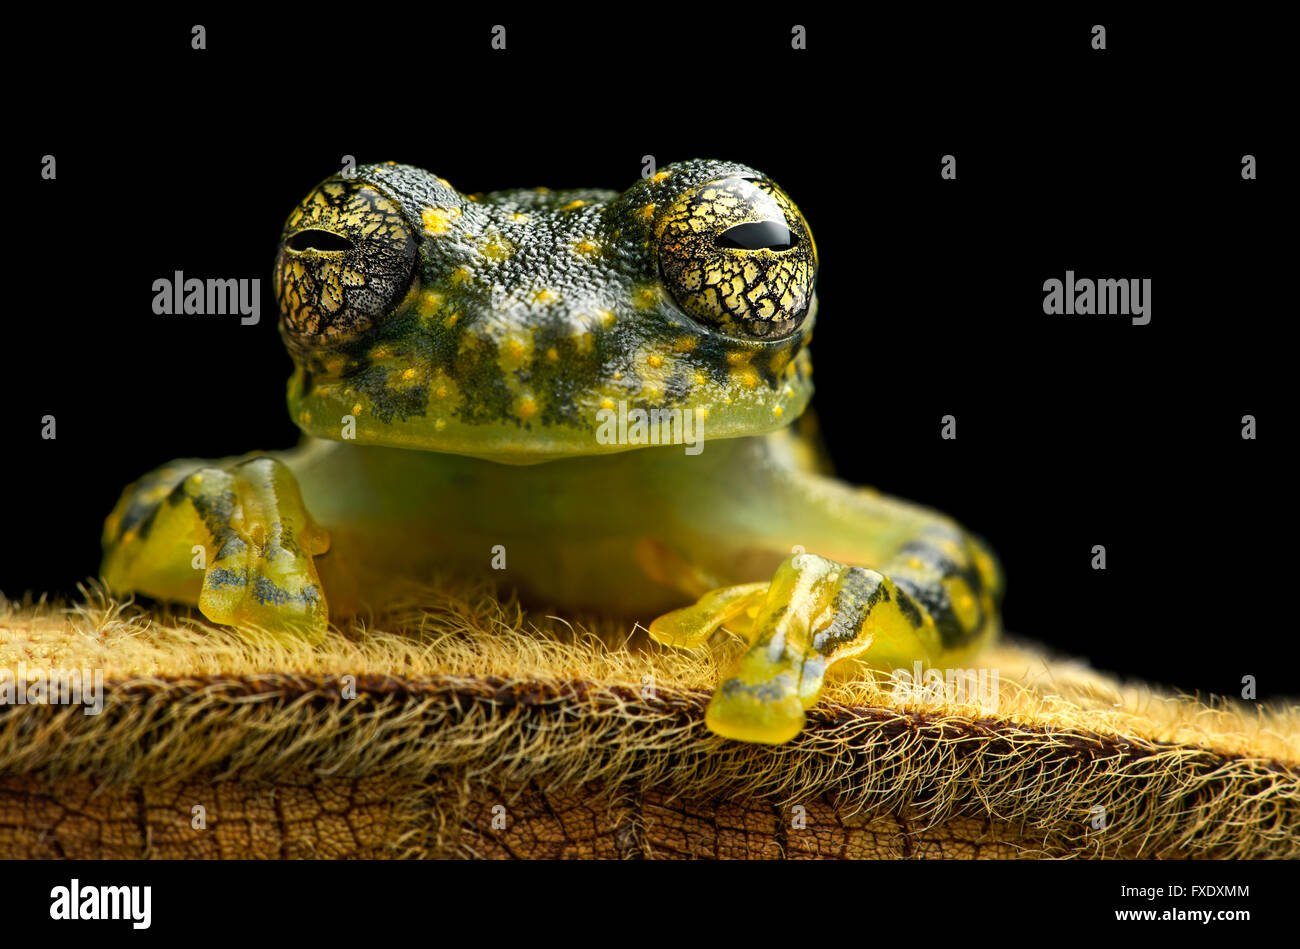 White-Spotted Frog Cochran (Sachatamia albamoculata) assis sur des feuilles velues, Choco rainforest, Canande River Photo Stock